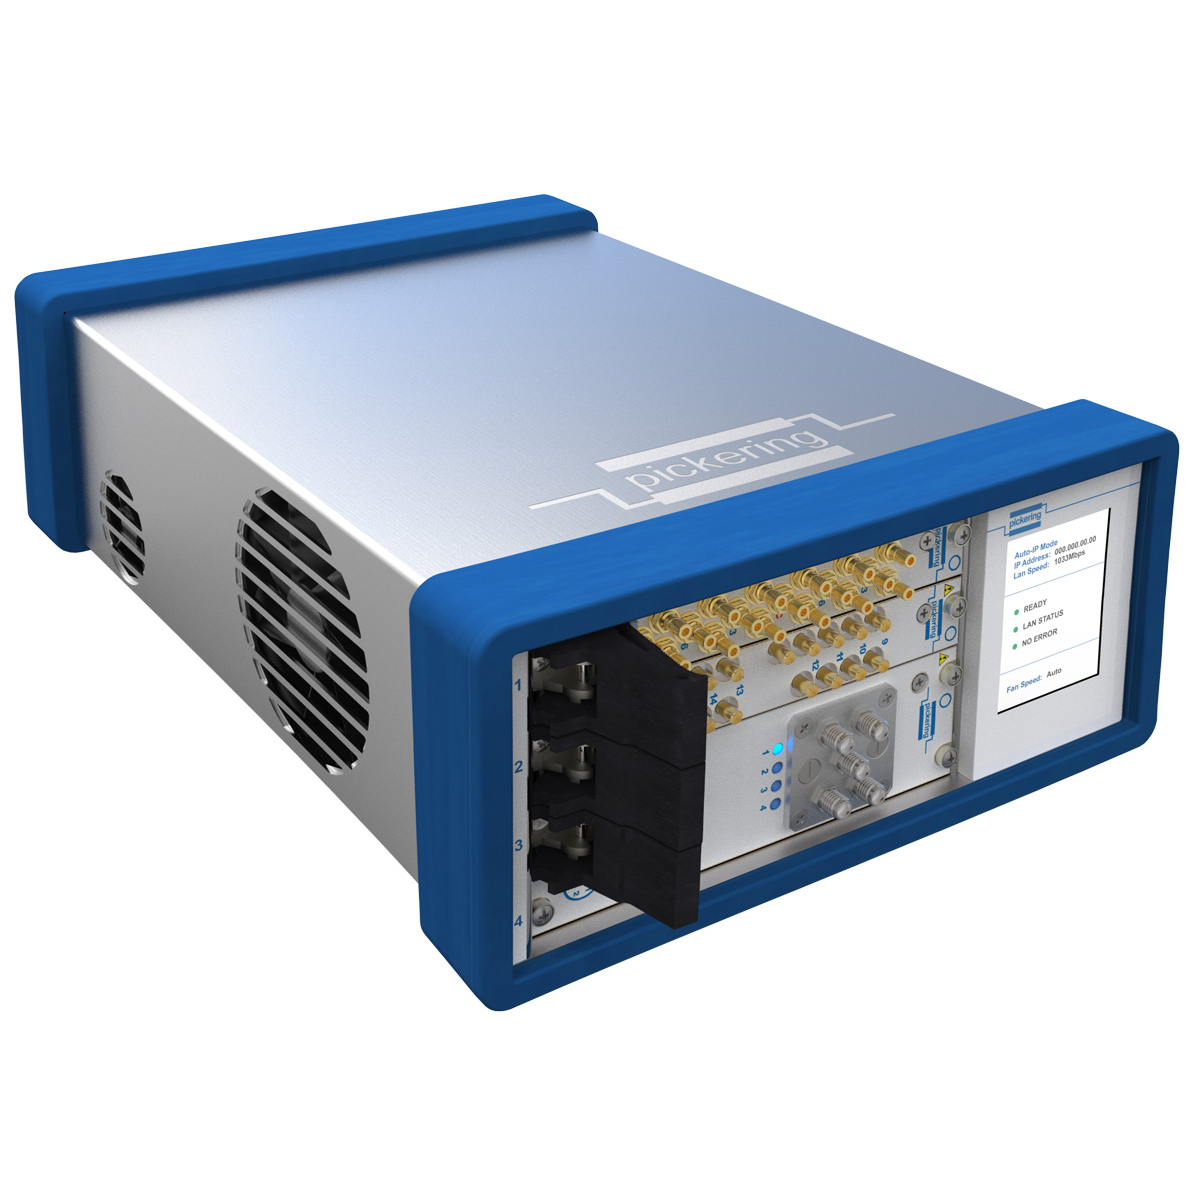 4-slot USB/LXI Modular Chassis from Pickering Interfaces